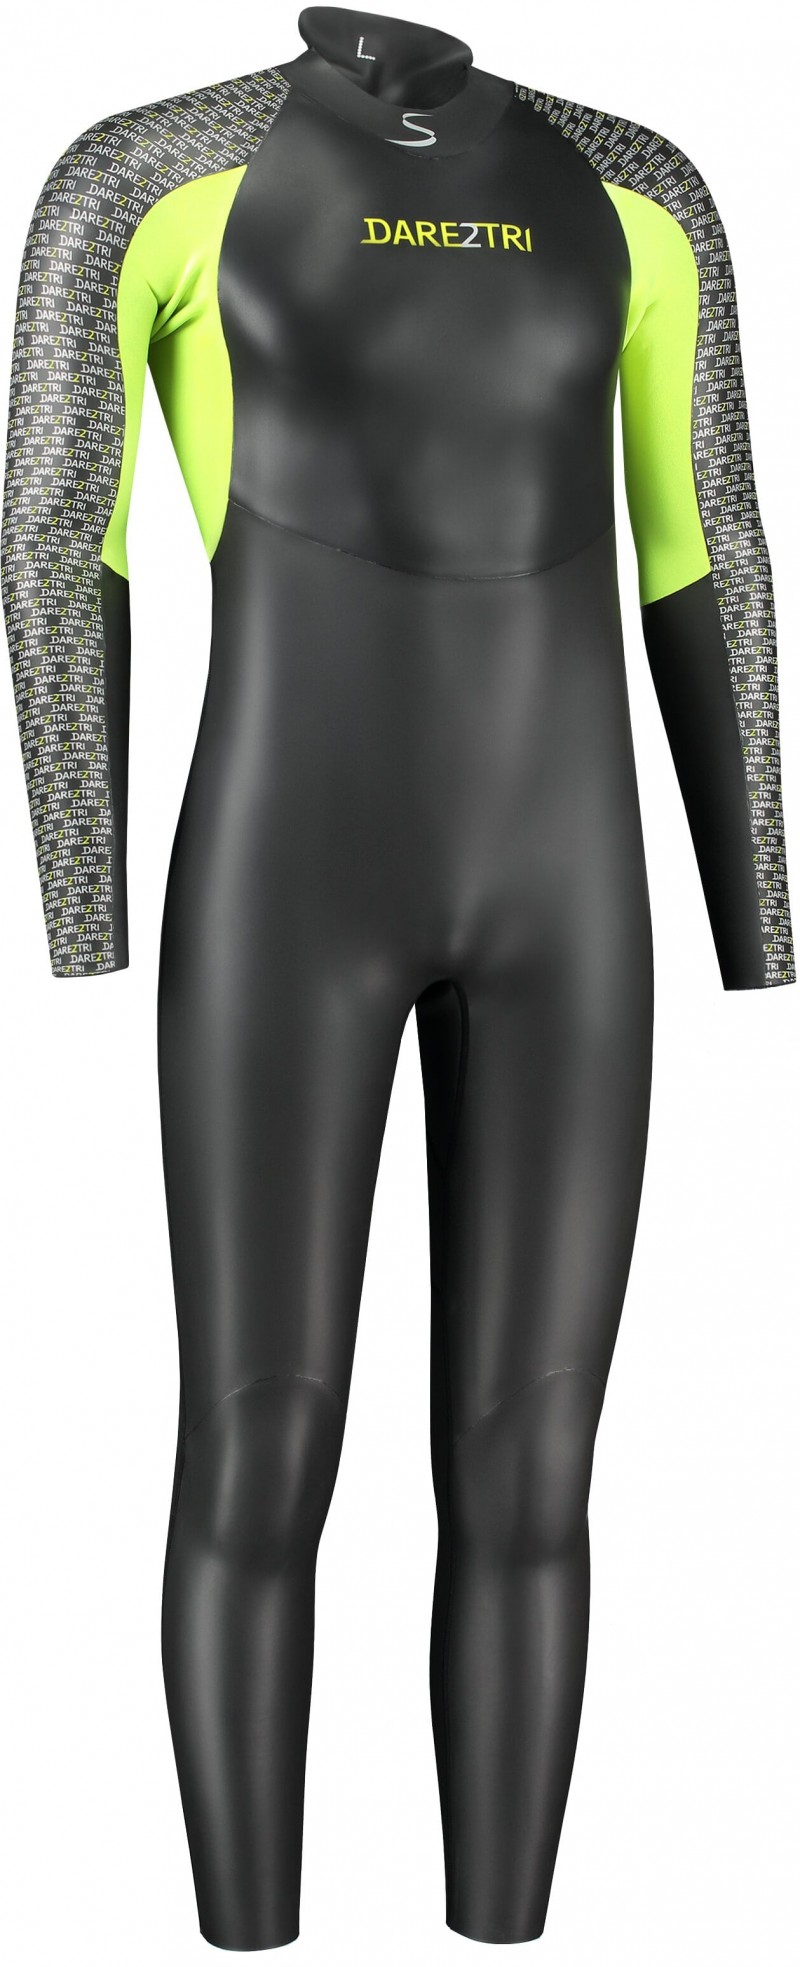 Dare2Tri - To Swim Wetsuit (Size Large)